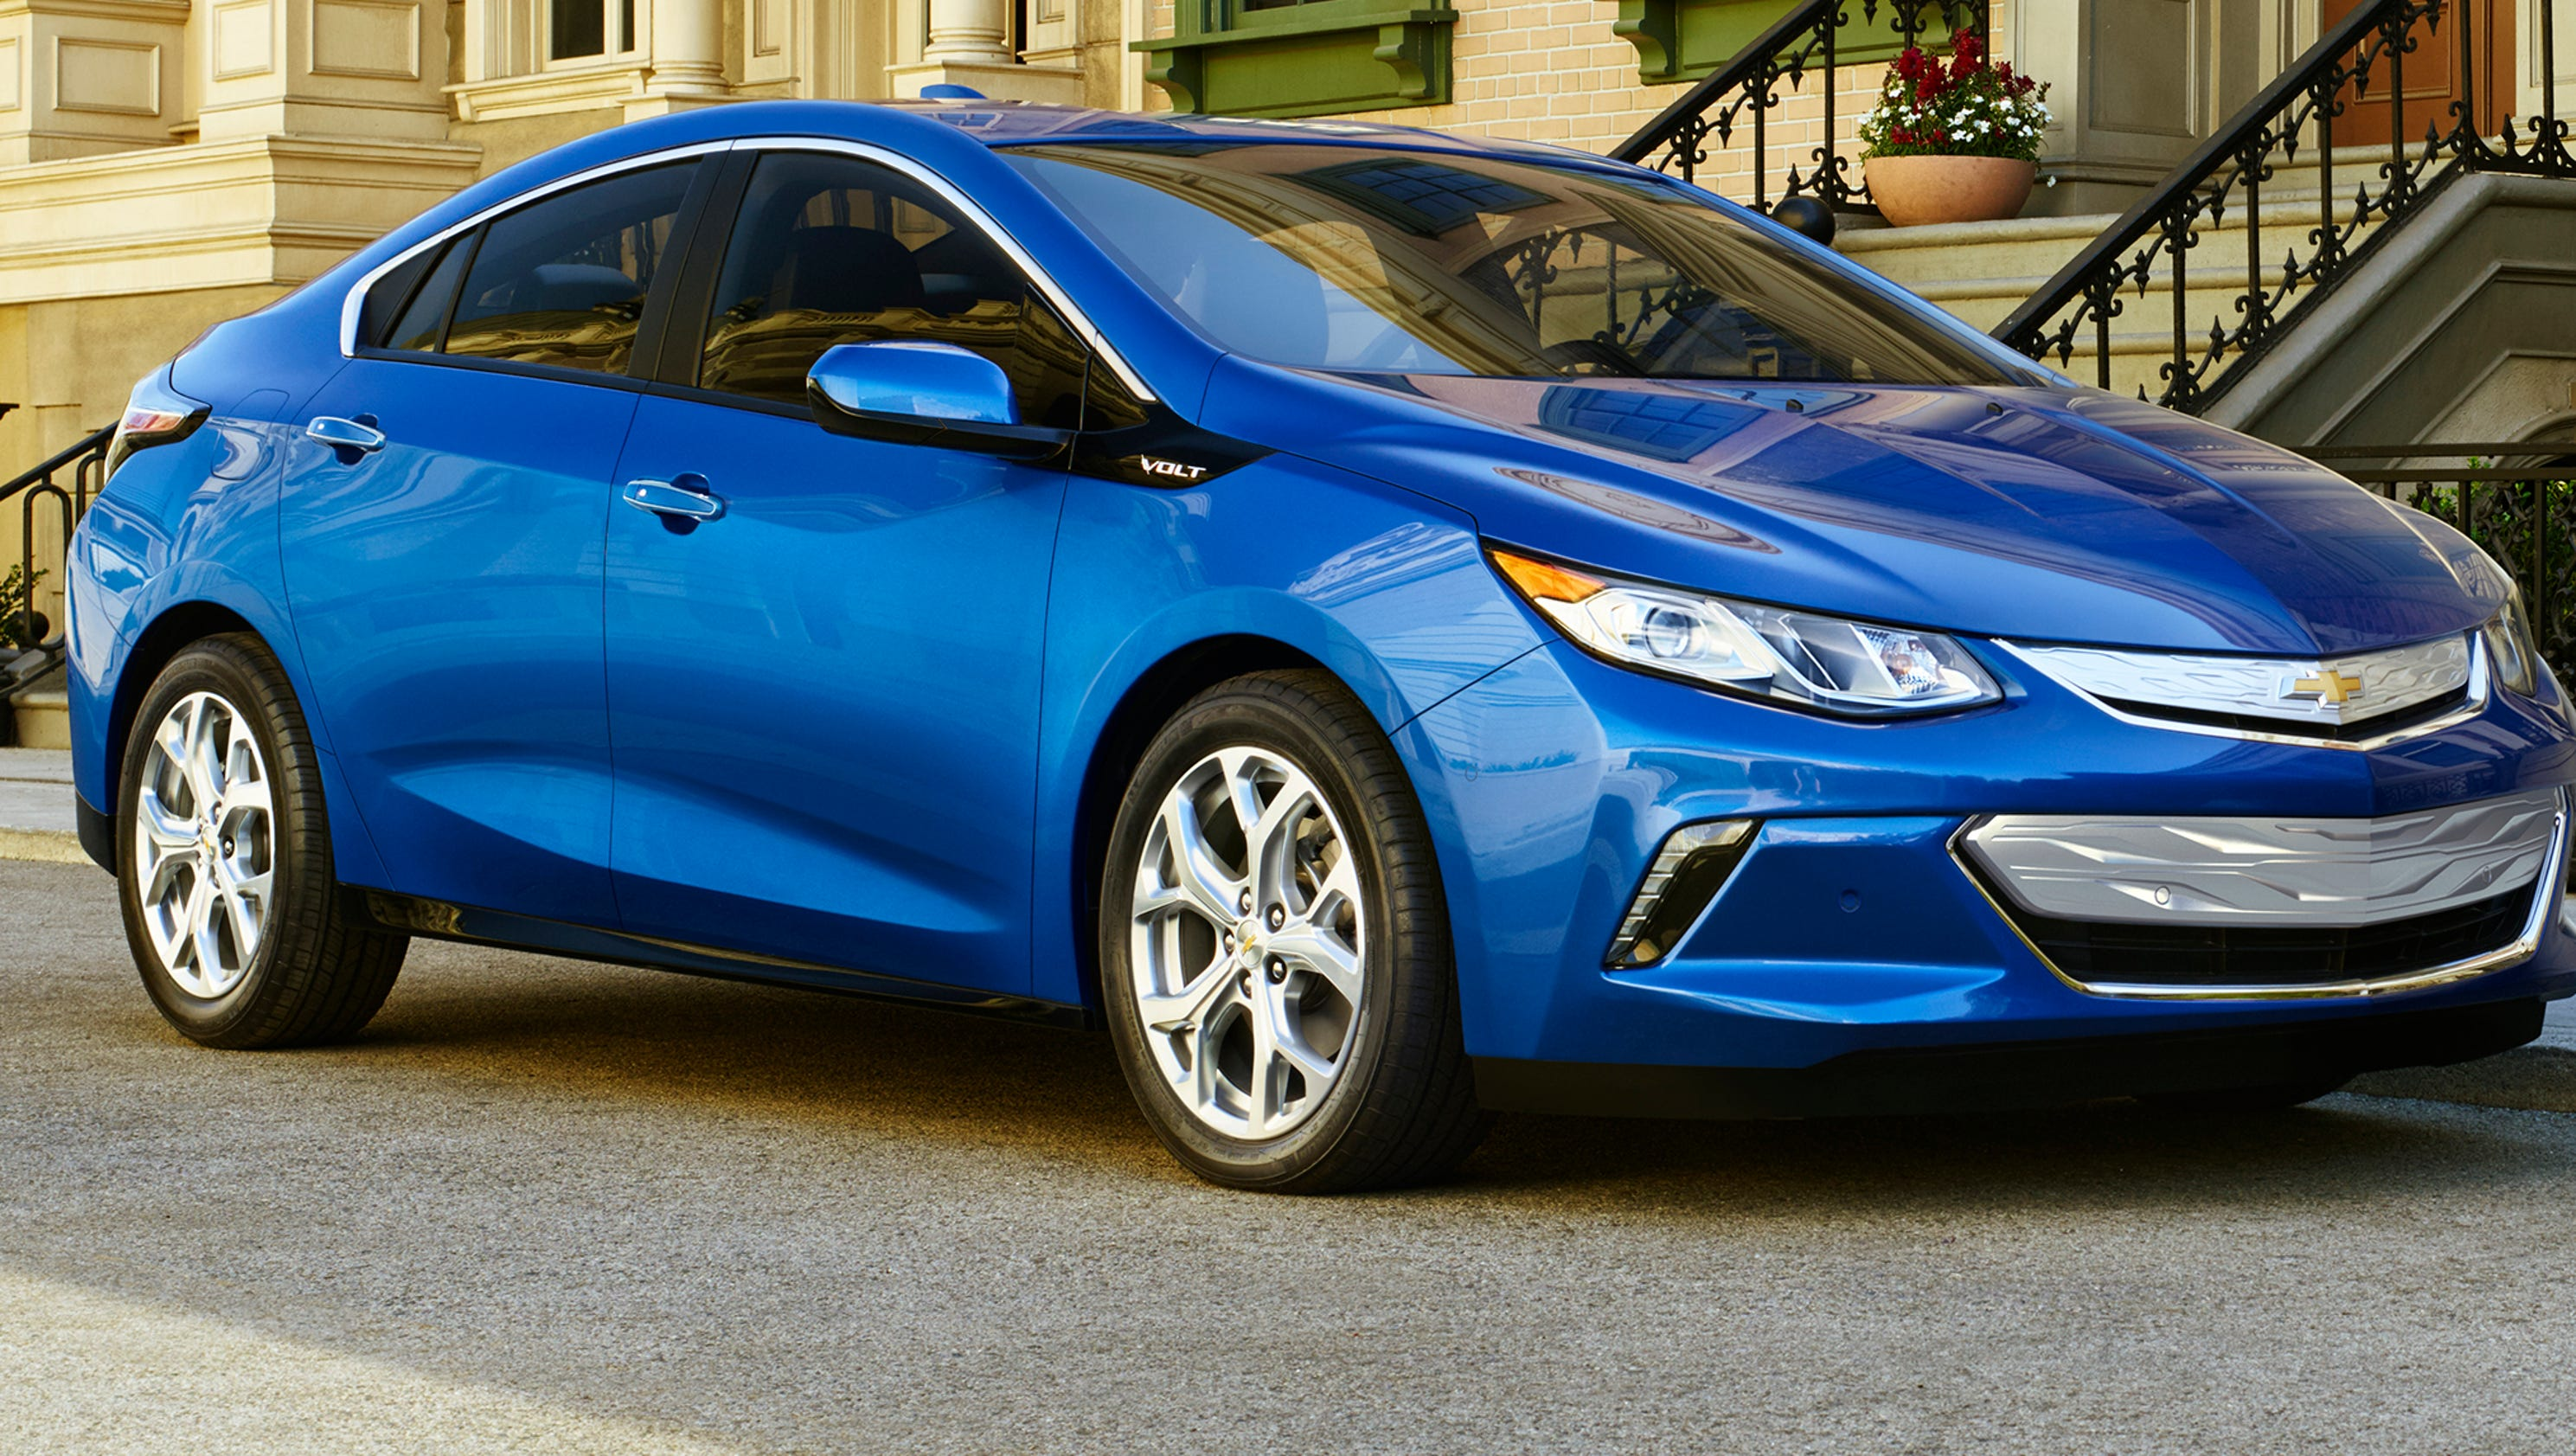 charges of last twice volt as the chevy in chevrolet s model news time roadshow quick year half